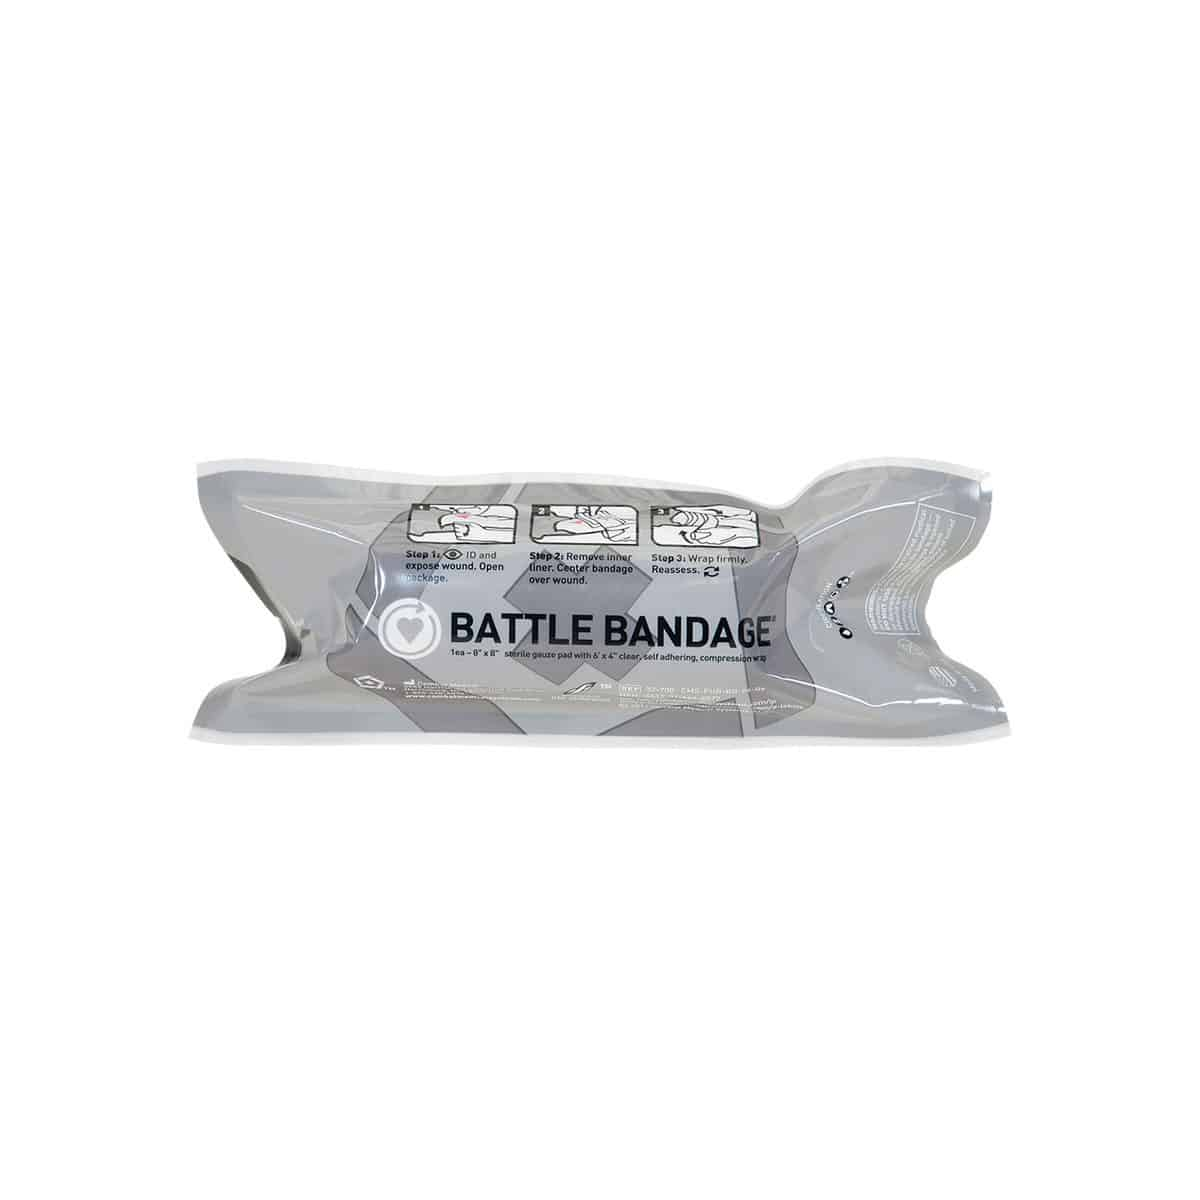 battle bandage package